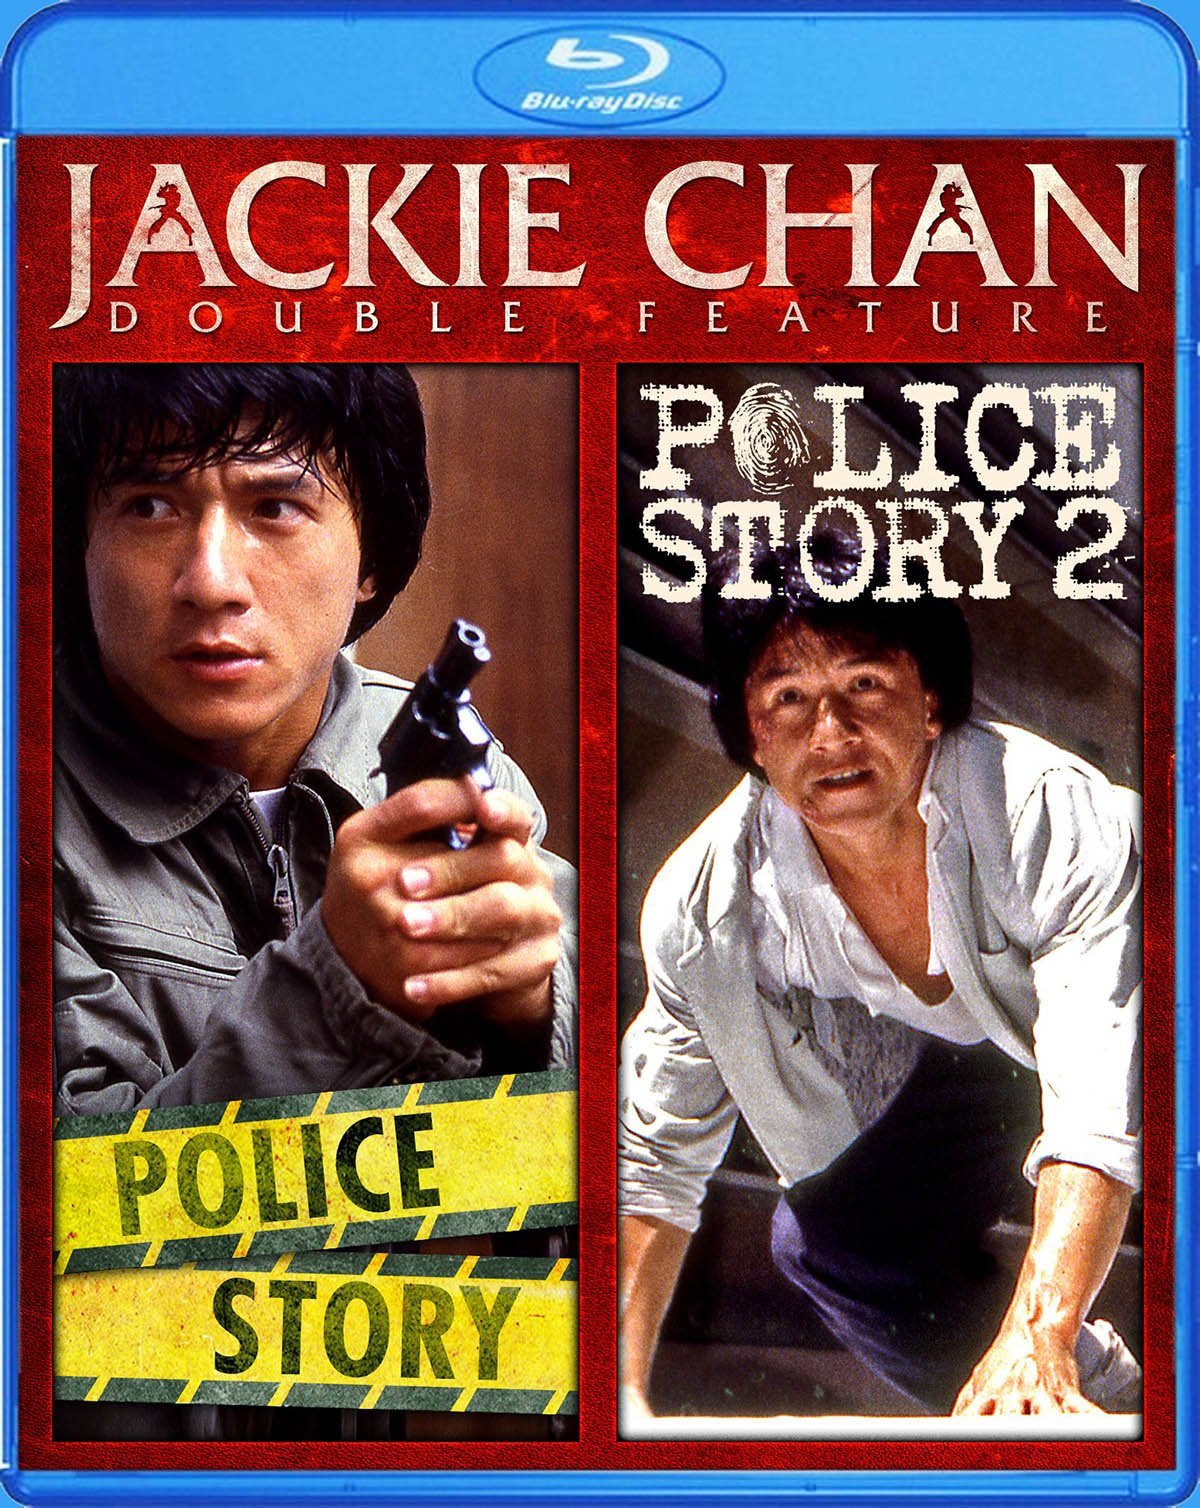 Jackie Chan Double Feature: Police Story | Police Story 2